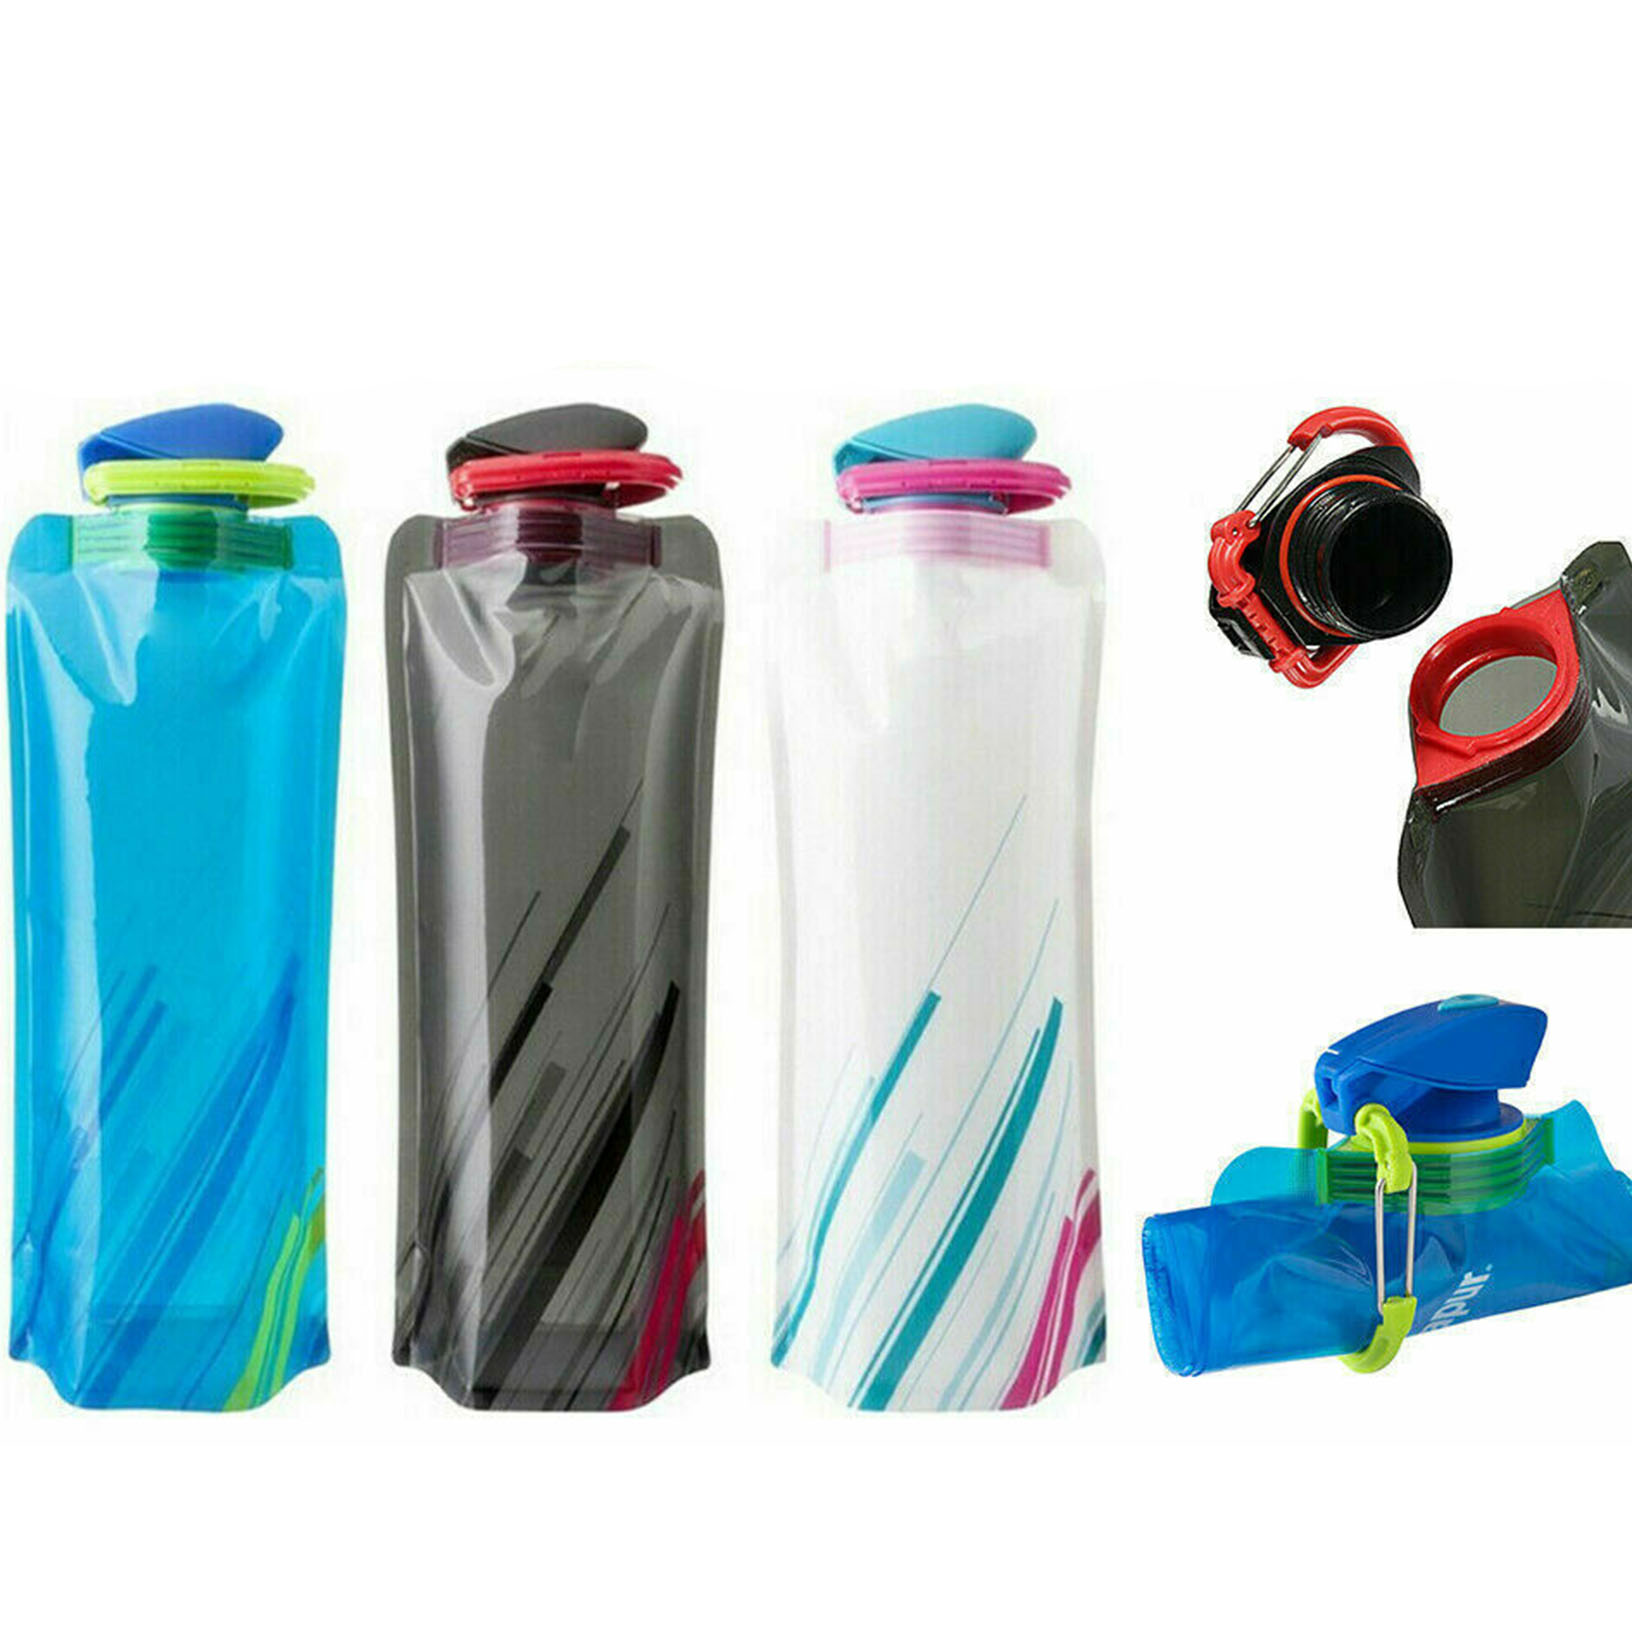 700mL Water Bottle Outdoor Sports Travel Portable Collapsible Folding Kettle Cup